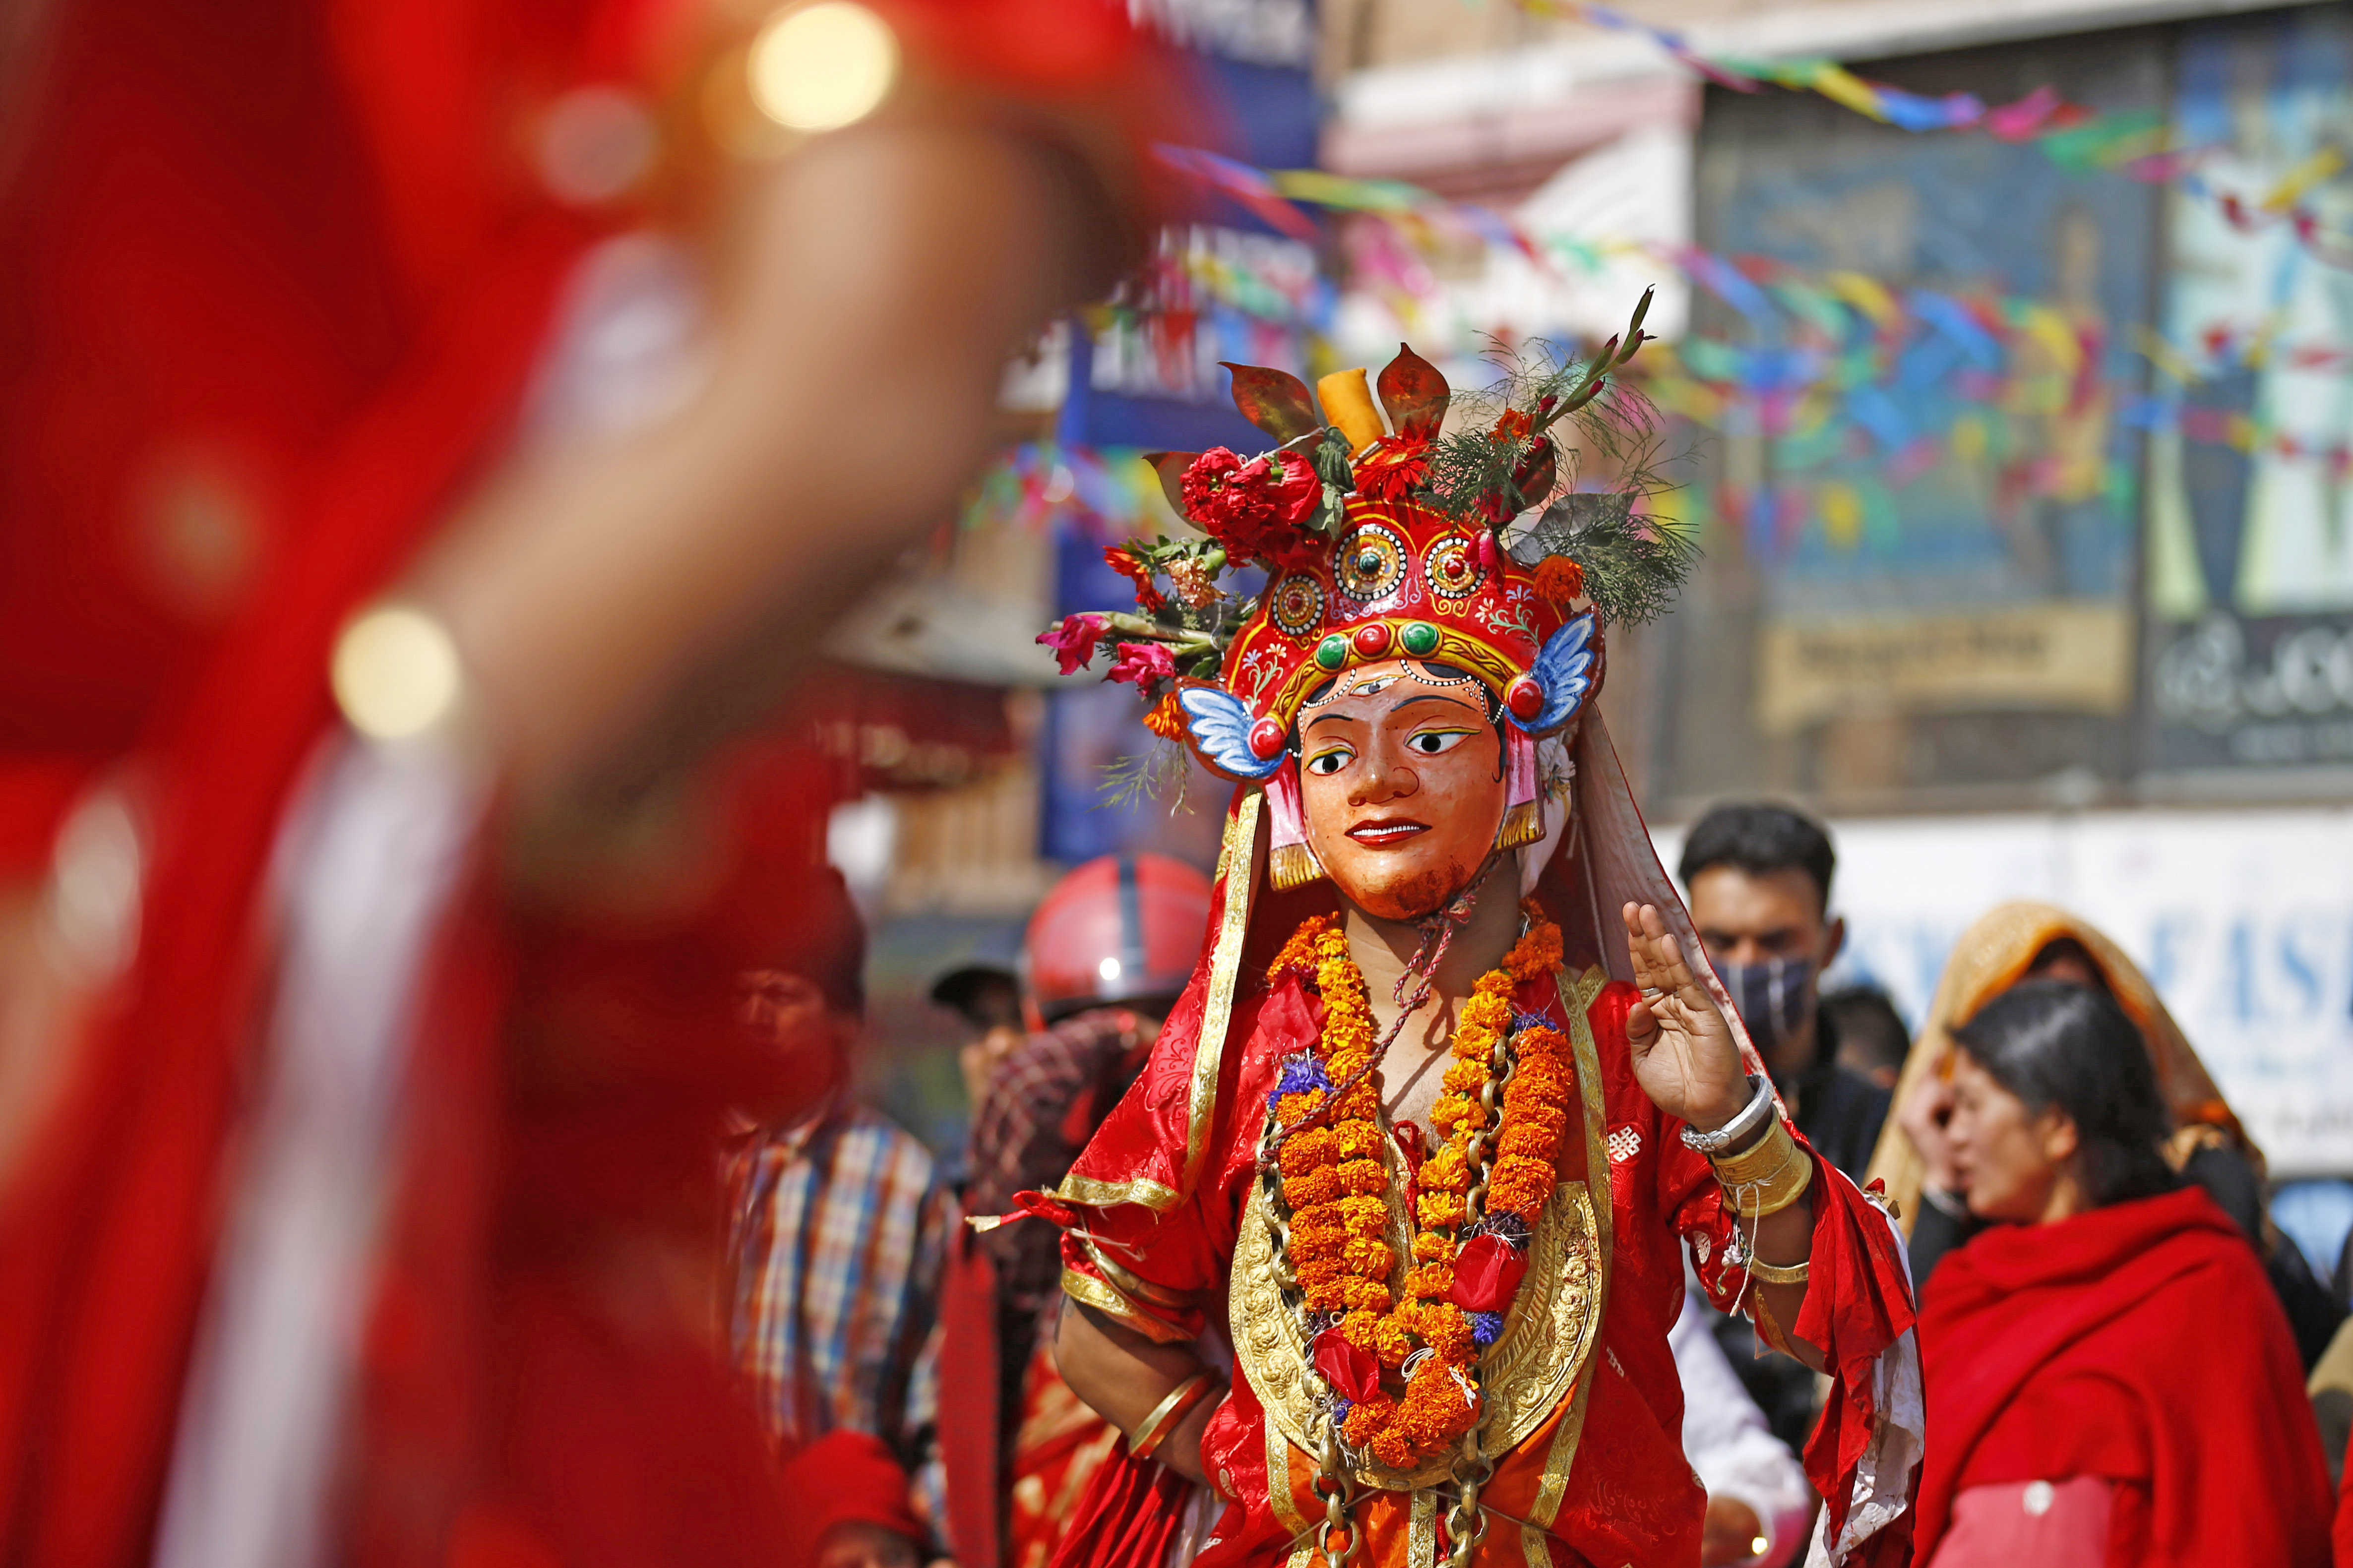 People dressed as deities performing traditional masked dance to celebrate Shree Pachali Bhairav Khadga Siddhi Jatra, a festival which is celebrated once in 12 years, in Makhan Tole, Kathmandu, on Saturday.  Photo: THT